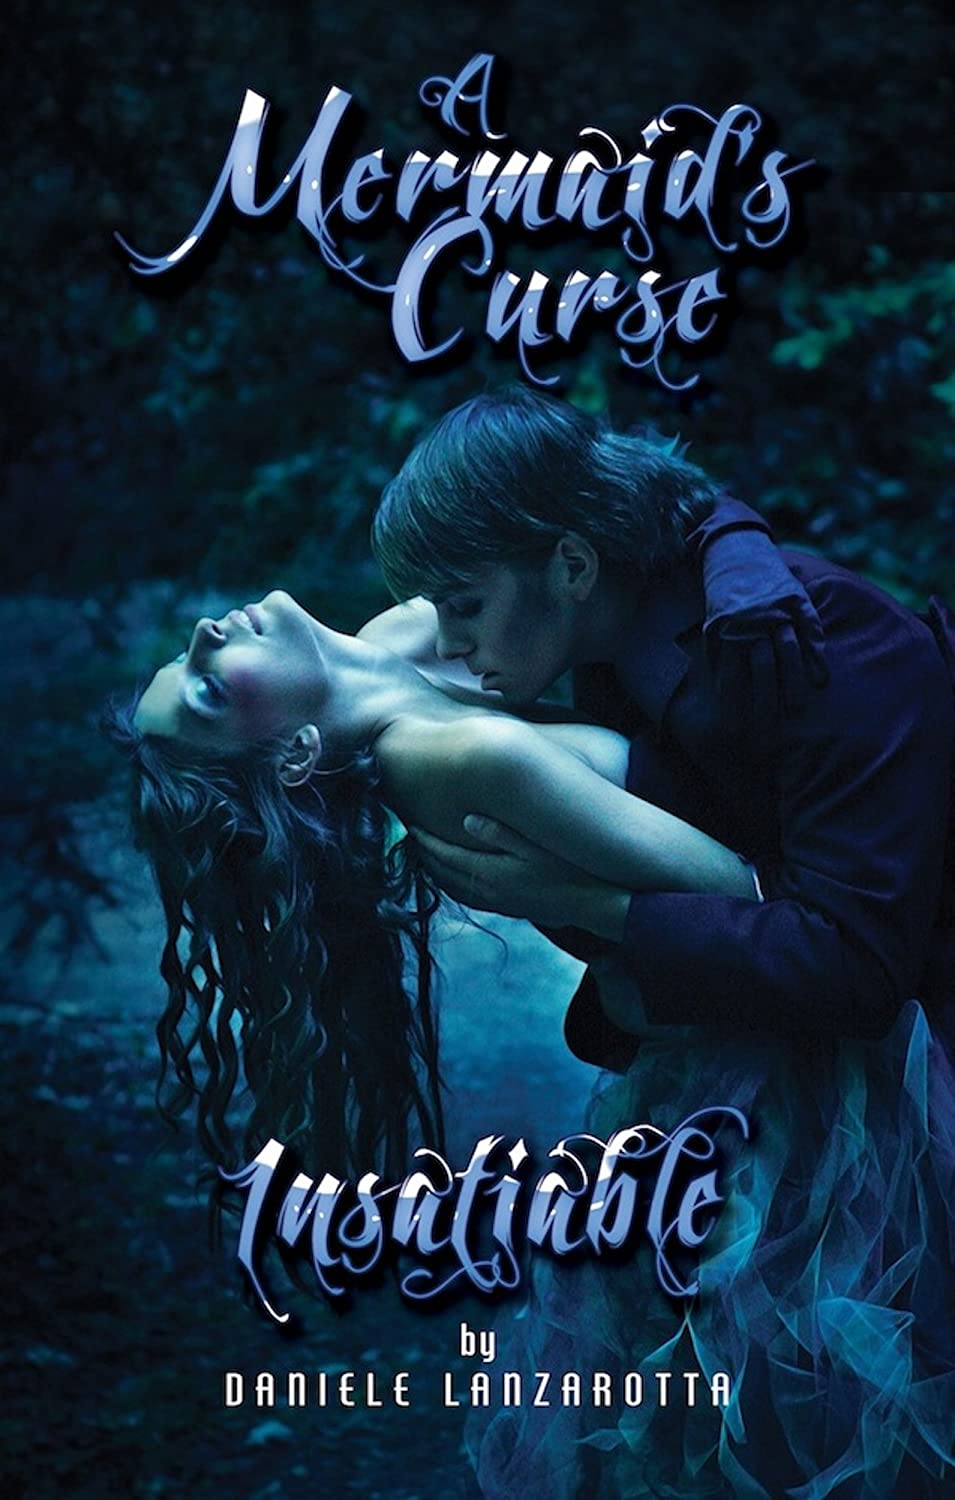 http://www.amazon.com/Insatiable-Mermaids-Curse-Daniele-Lanzarotta-ebook/dp/B00BRNGFK8/ref=tmm_kin_swatch_0?_encoding=UTF8&sr=8-1&qid=1392341599